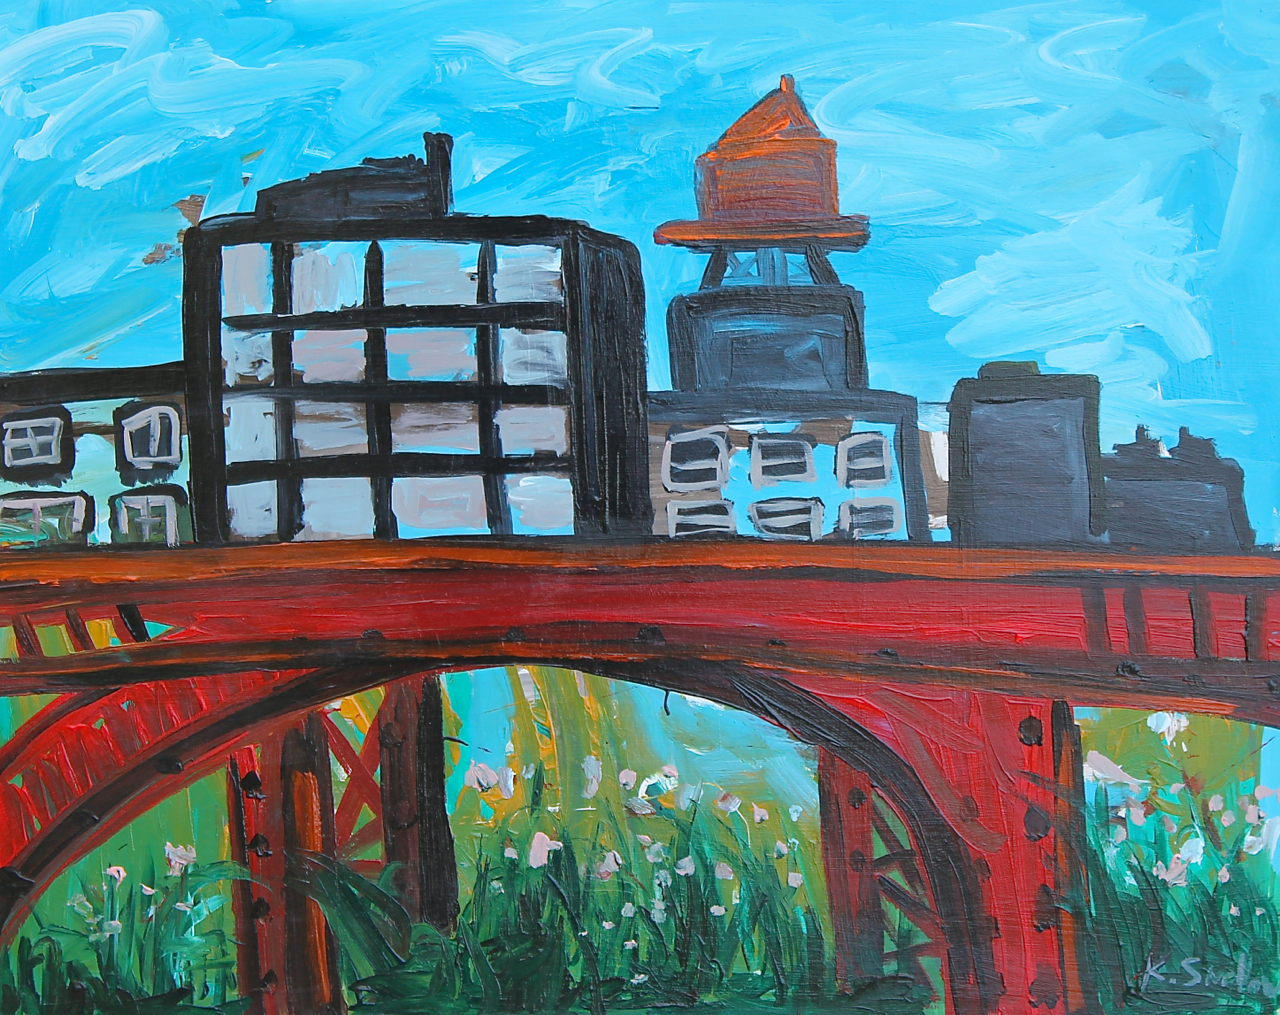 Ravenswood In Bloom, acrylic on panel, 24x30, 2014, $350